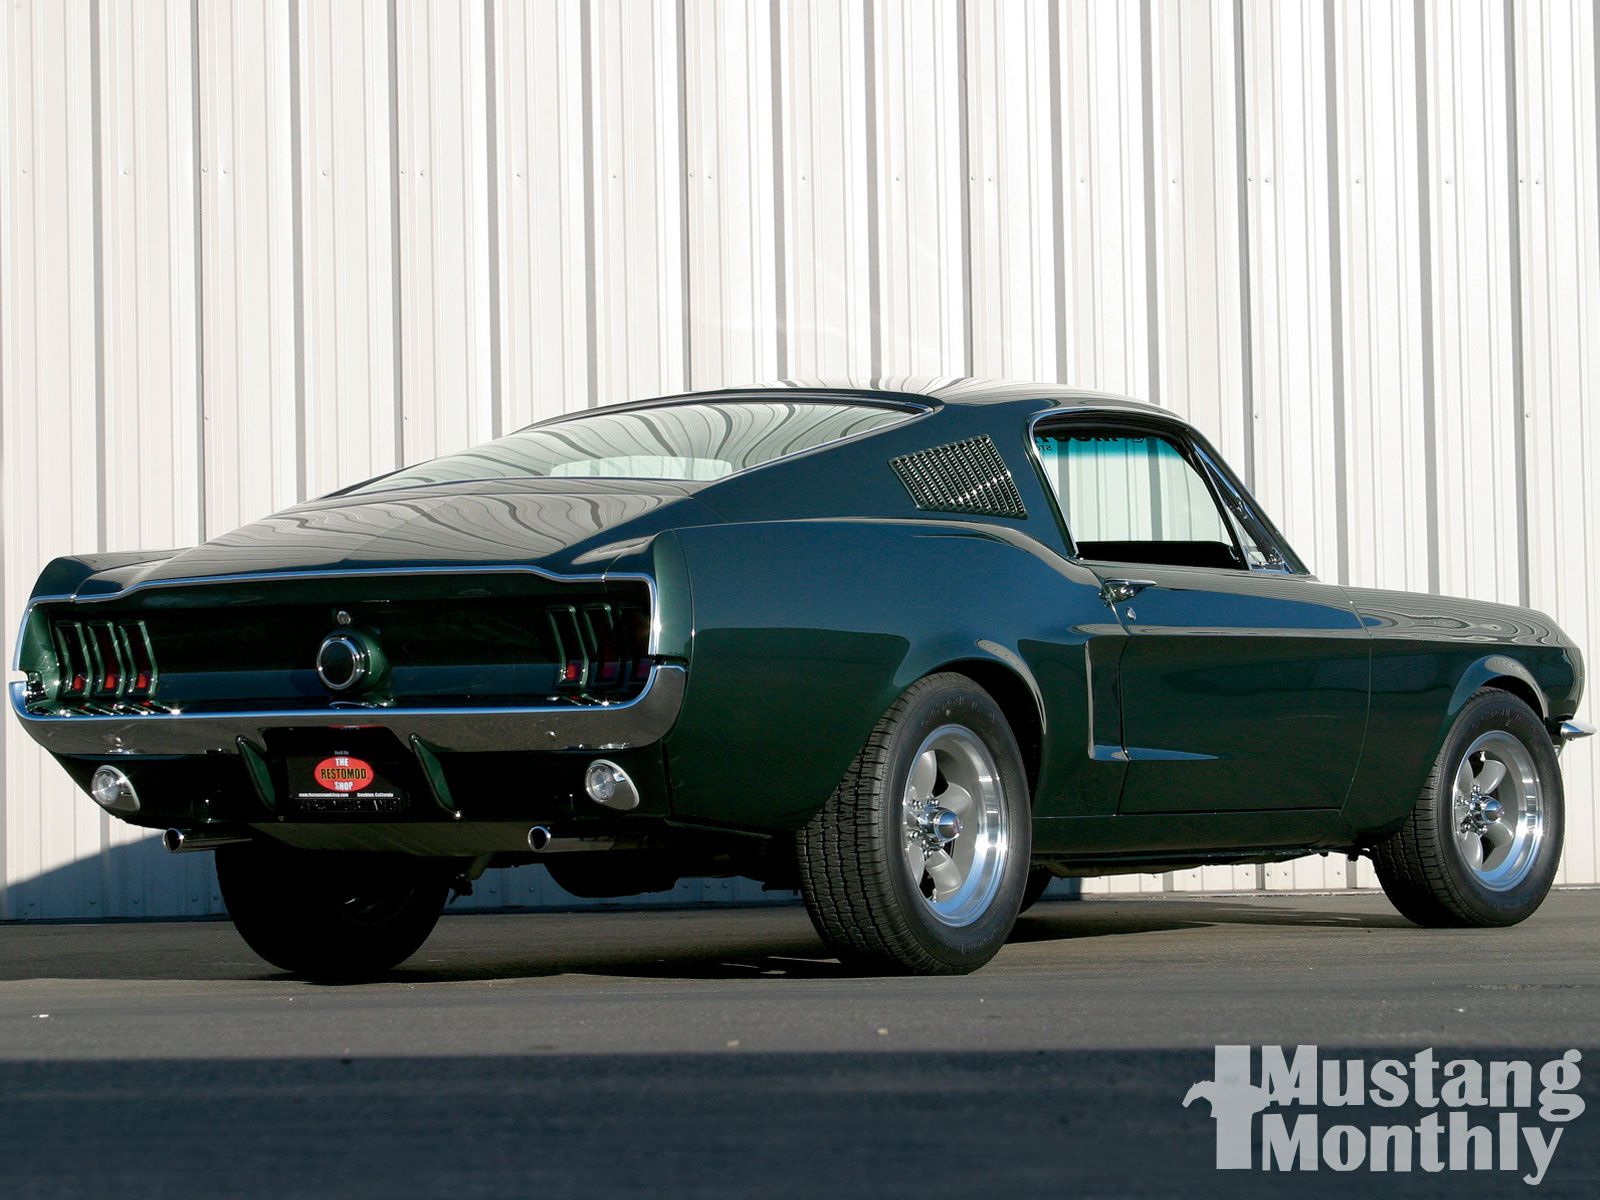 1968 mustang fastback bullitt replica if only steve mcqueen was still here